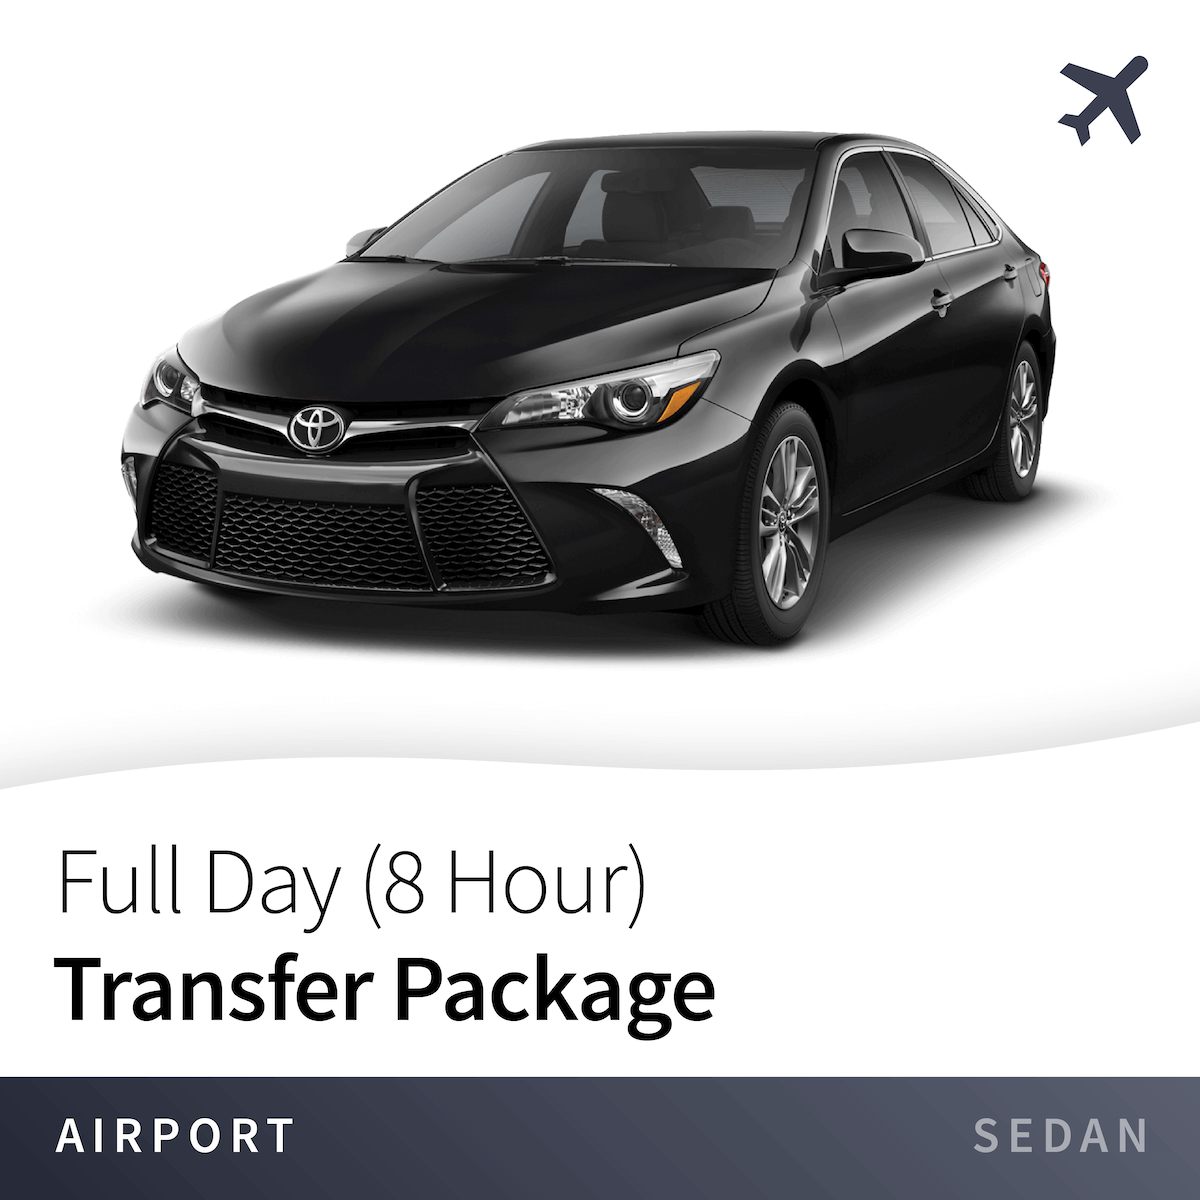 Full Day (8 Hour) Transfer Package From Airport - Sedan 4